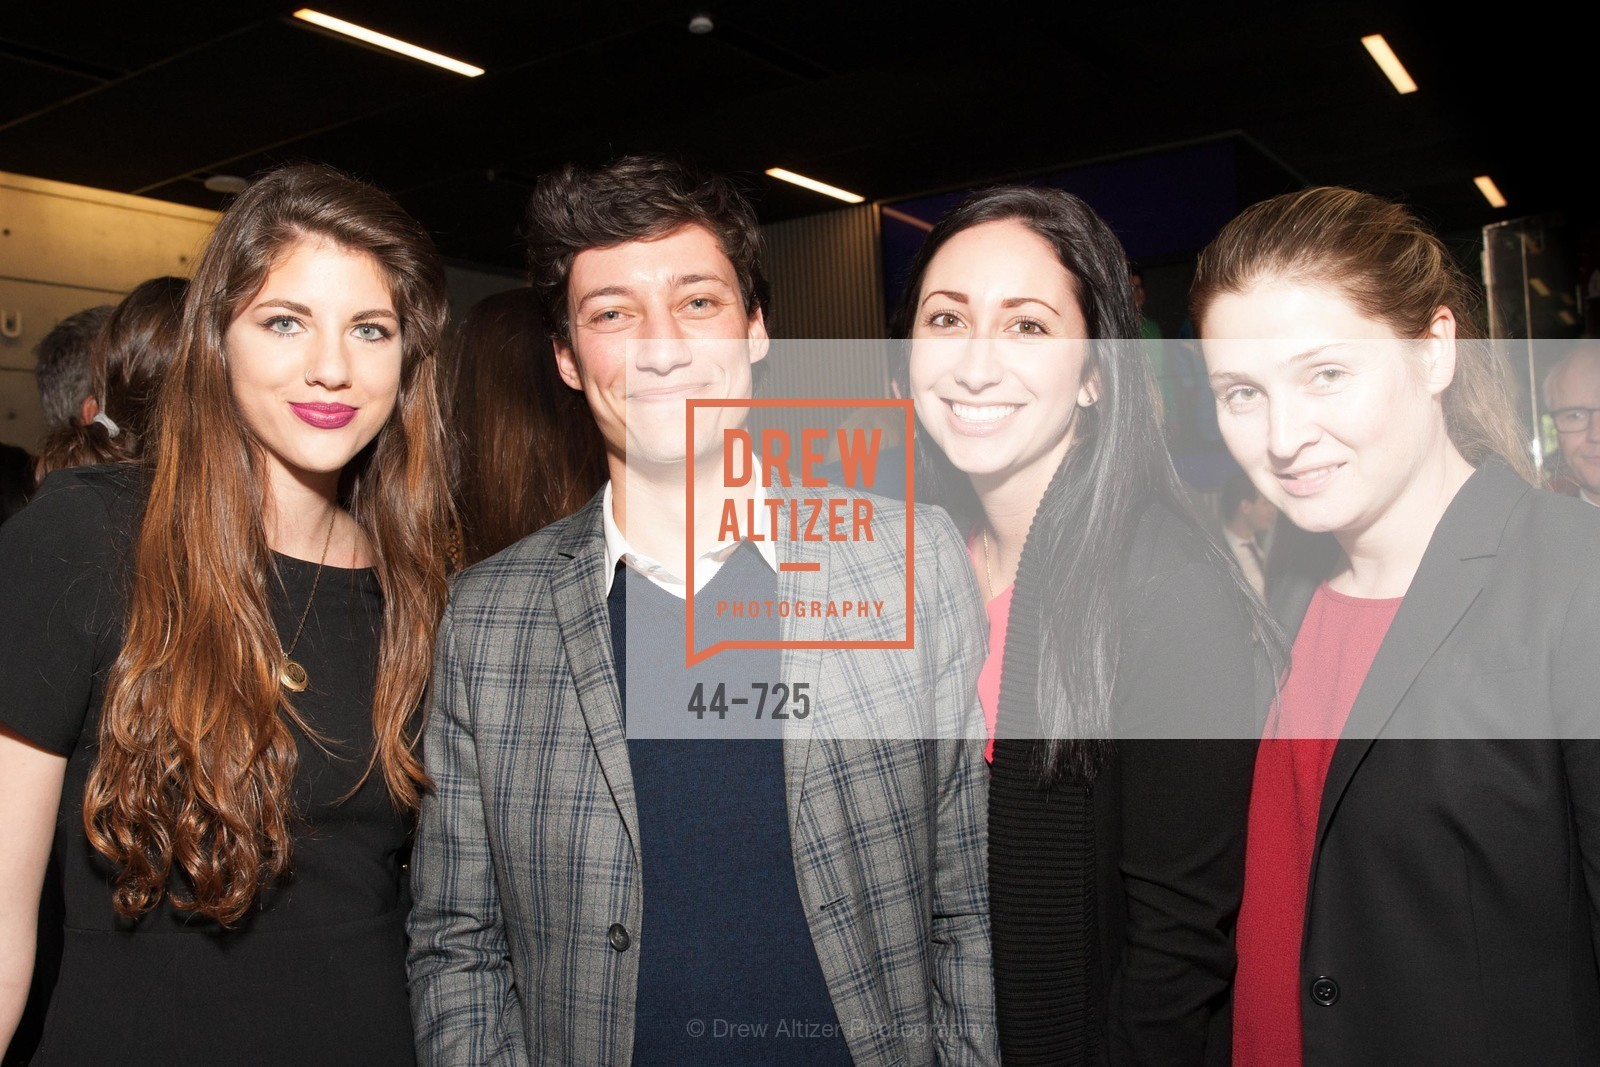 Hanna Schieve, Matty Neikrug, Susi Galyon, Alexis Detwiler, COMMON SENSE Media Awards 2015, US, May 14th, 2015,Drew Altizer, Drew Altizer Photography, full-service agency, private events, San Francisco photographer, photographer california